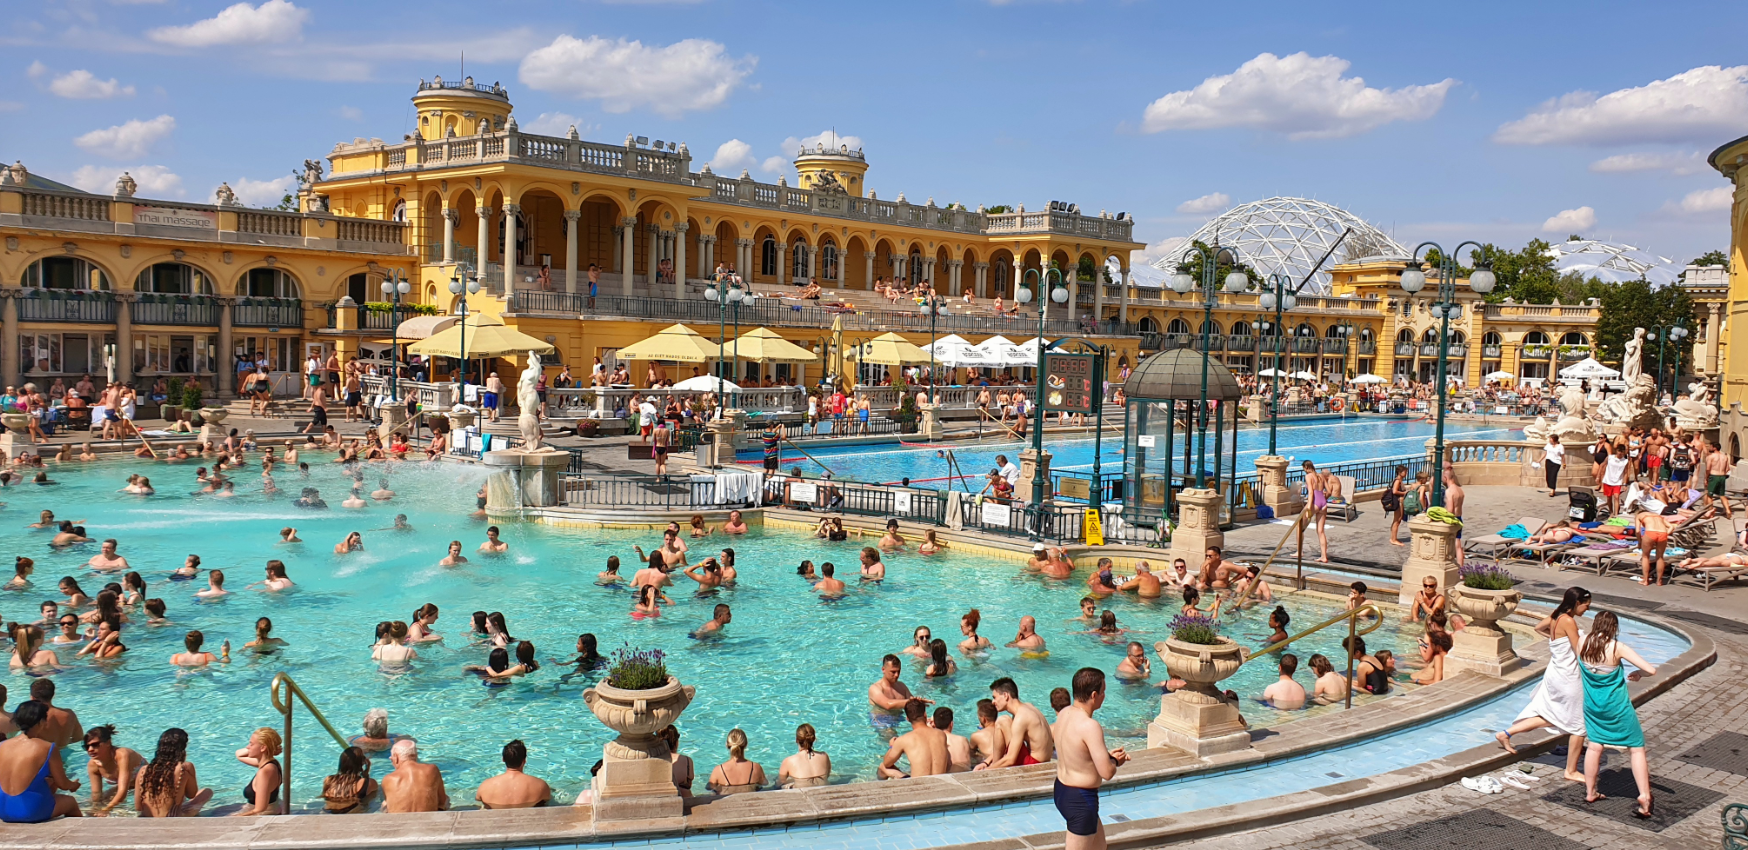 A view of the outdoor baths at Szechenyi. There are a lot of people in each of the baths.